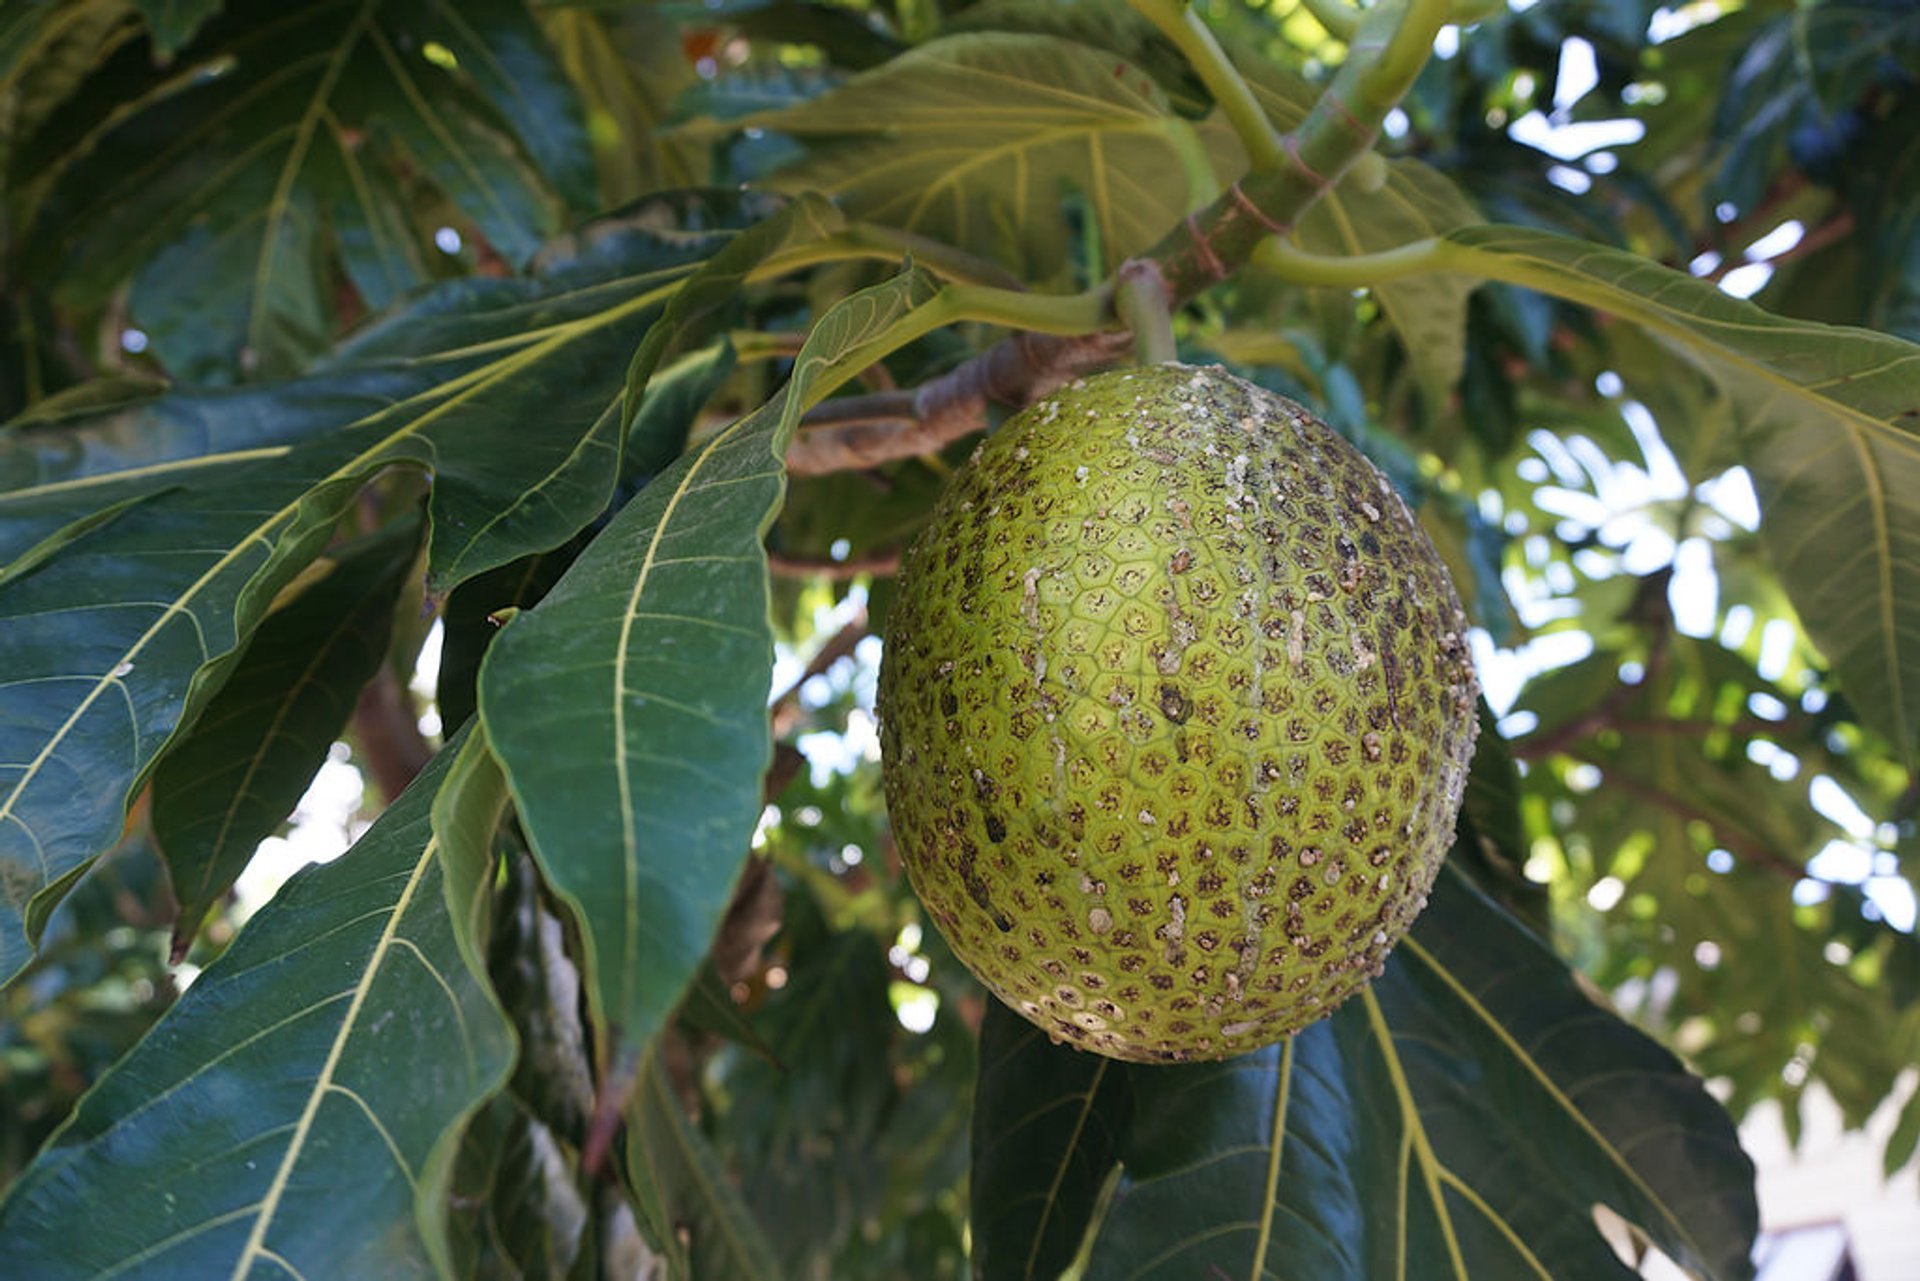 Breadfruit Season in Fiji 2020 - Best Time